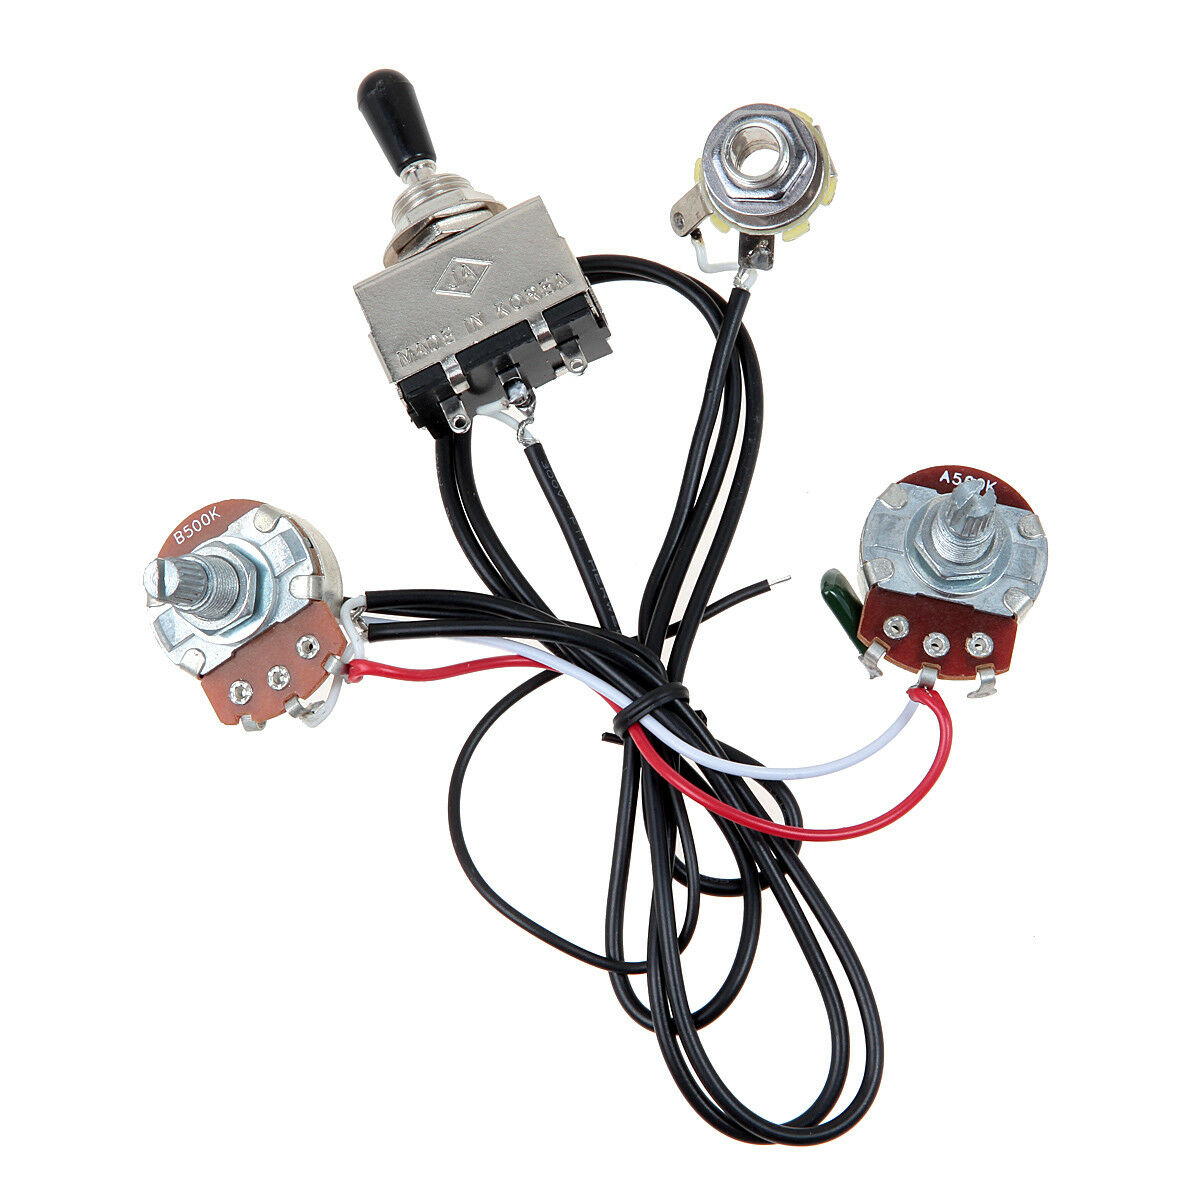 hight resolution of electric guitar wiring harness kit 3 way toggle switch 1 volume 1 tone 500k pots